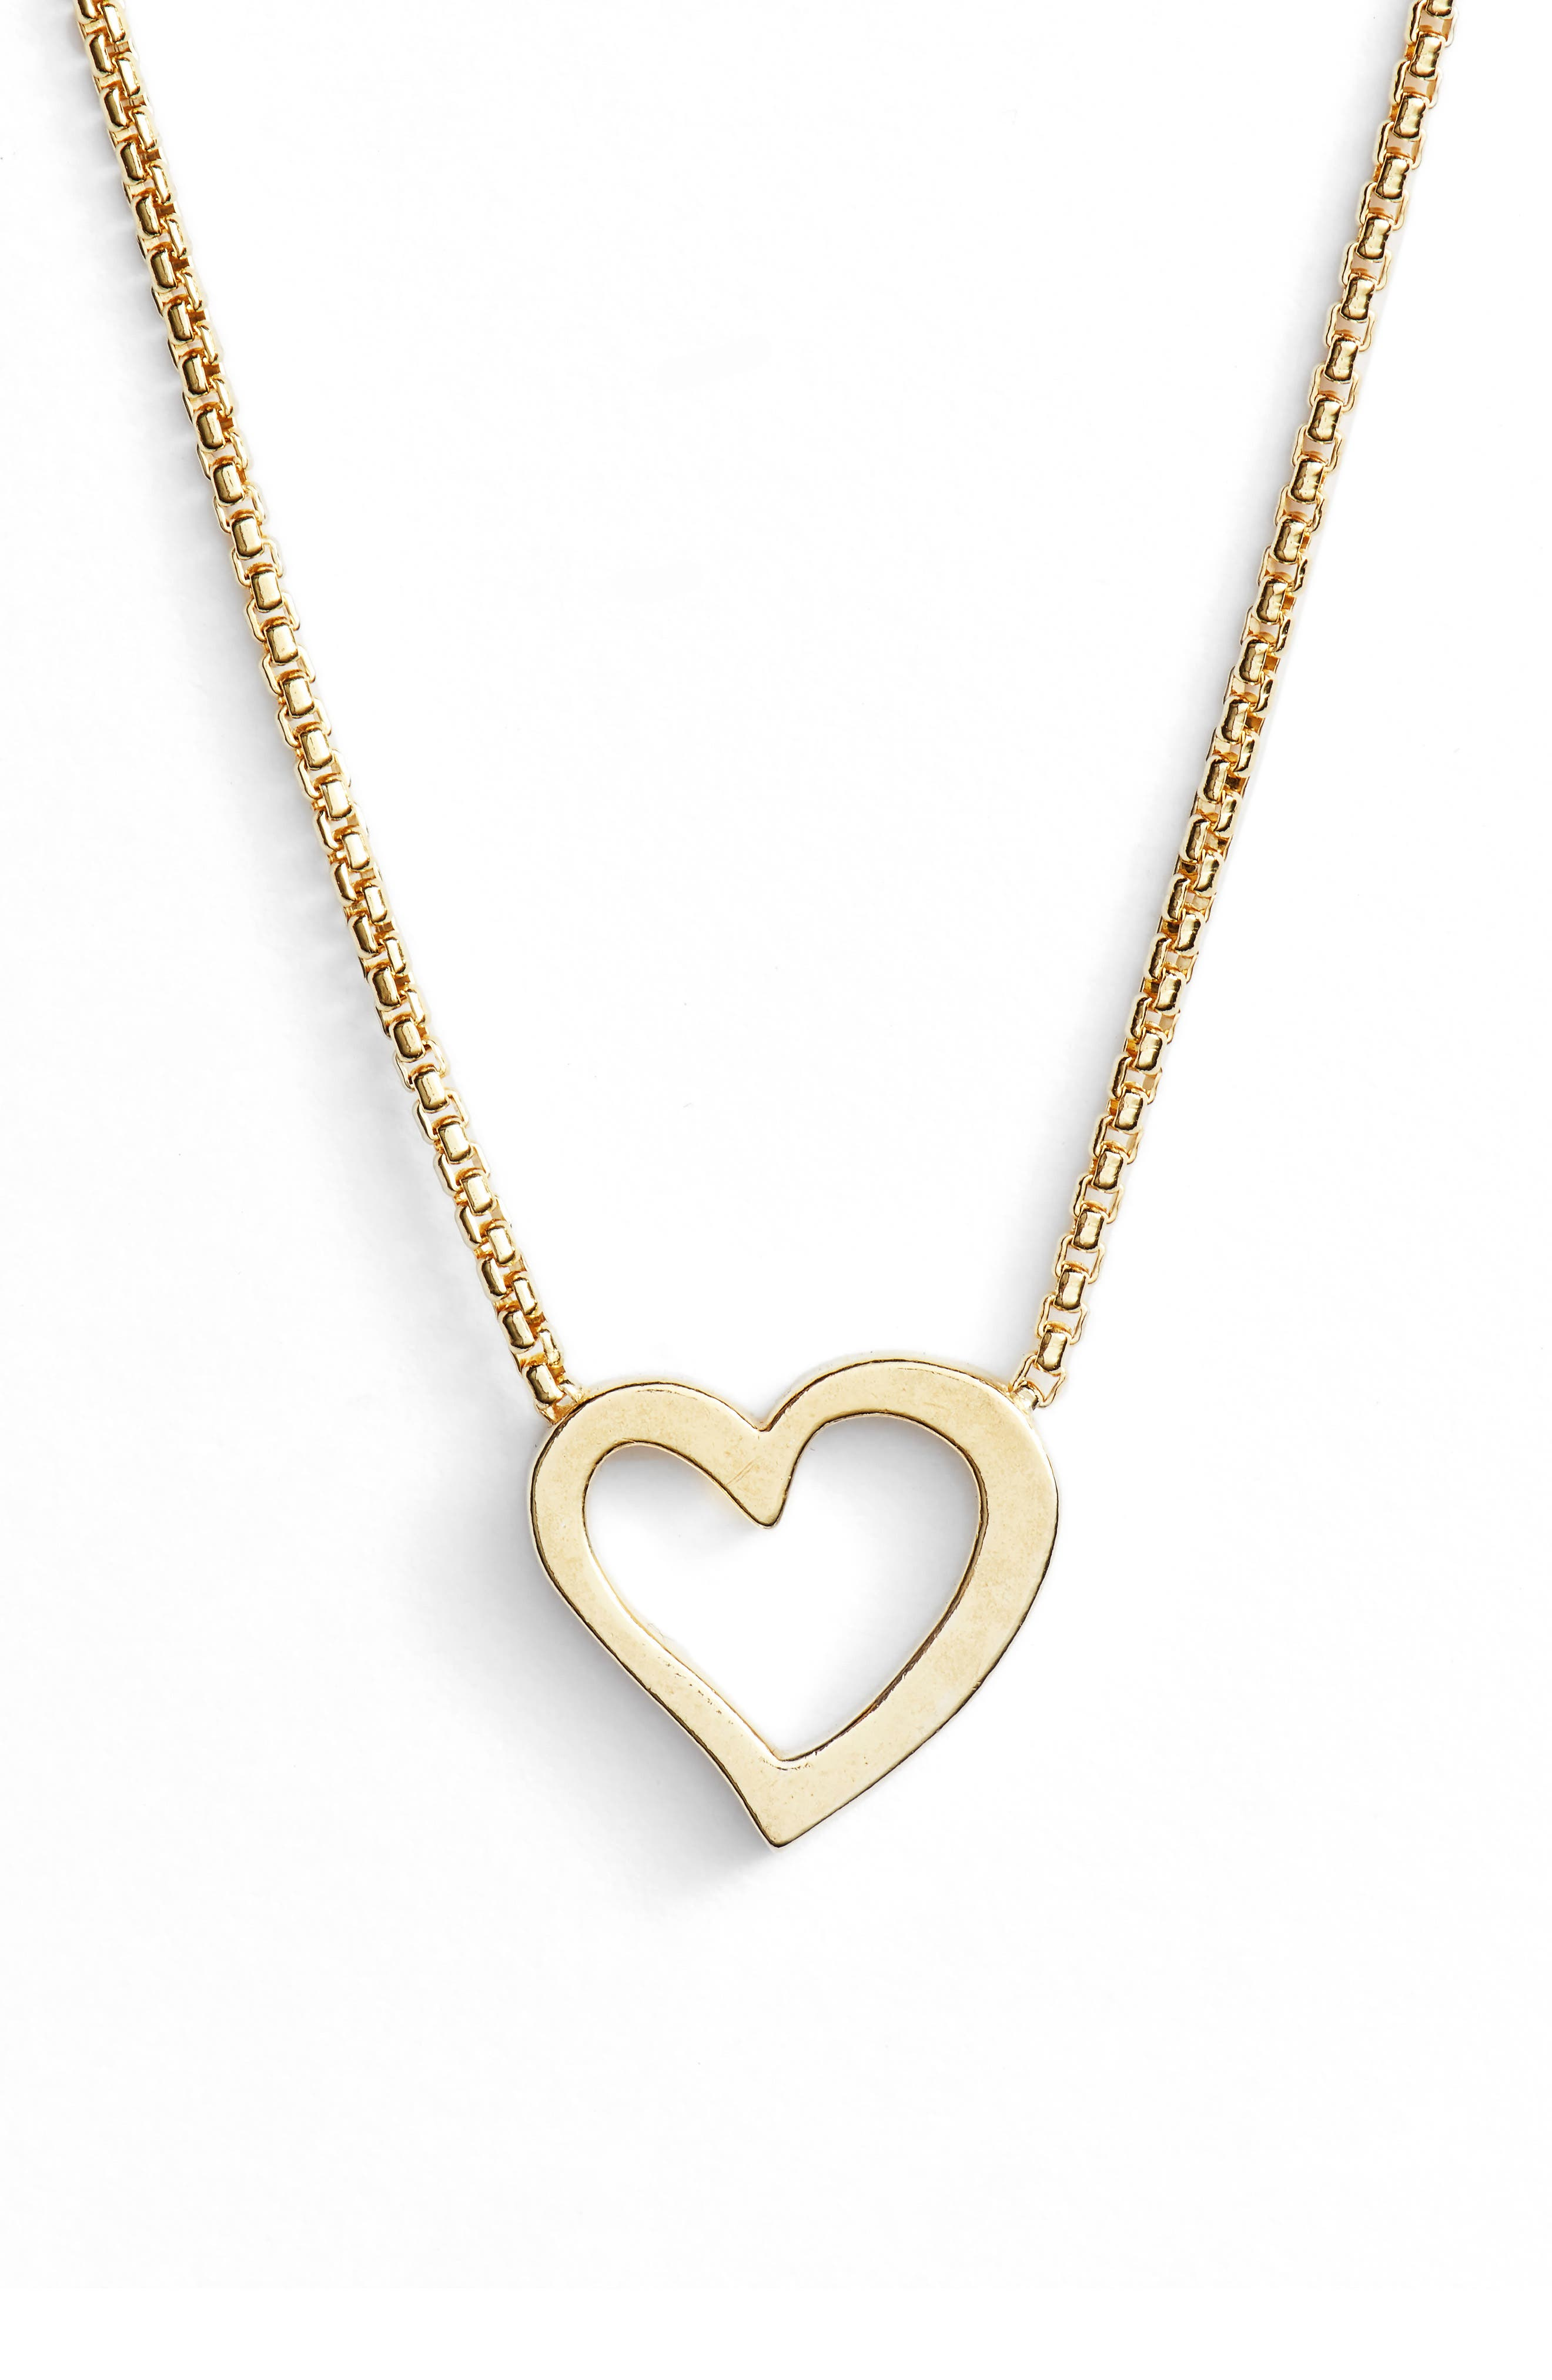 Alex and Ani Heart Necklace